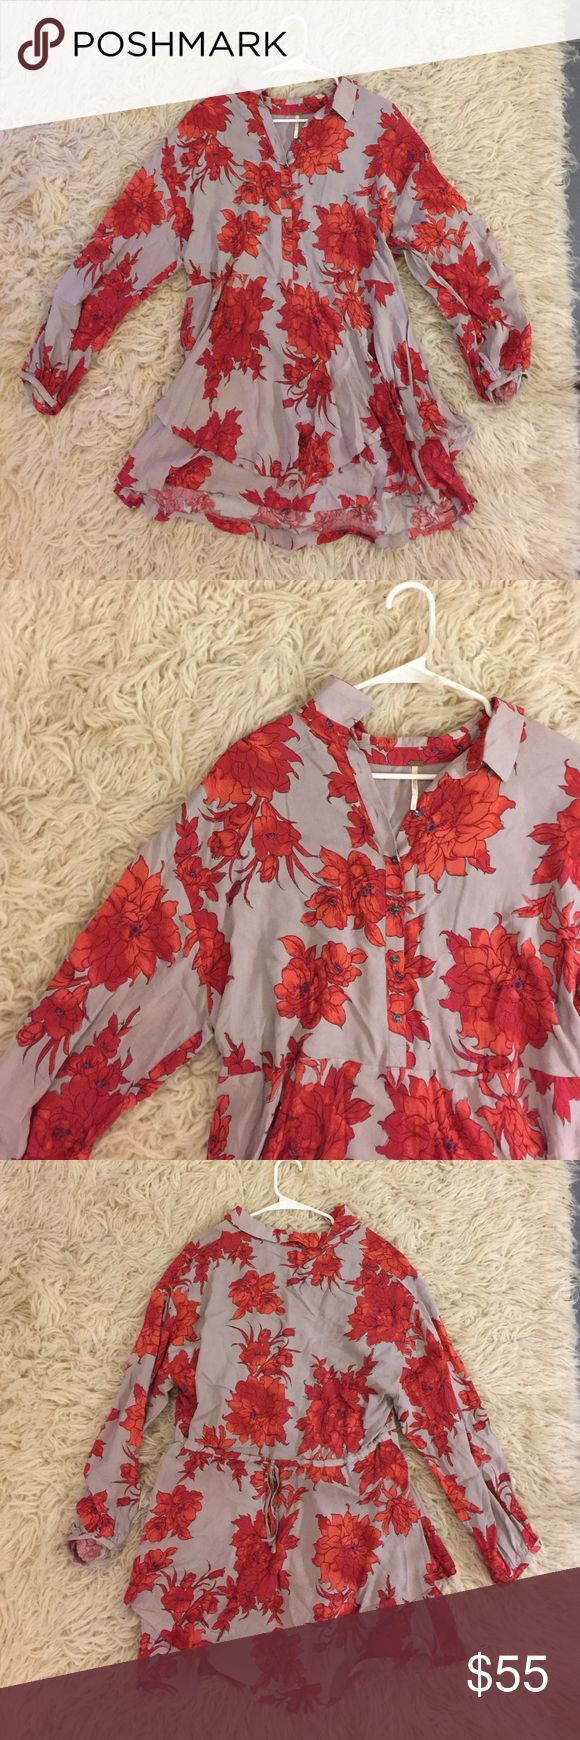 Free People Floral Dress S Super cute dress with the in back. Rarely wear so that's why it's here. Free People Dresses Midi